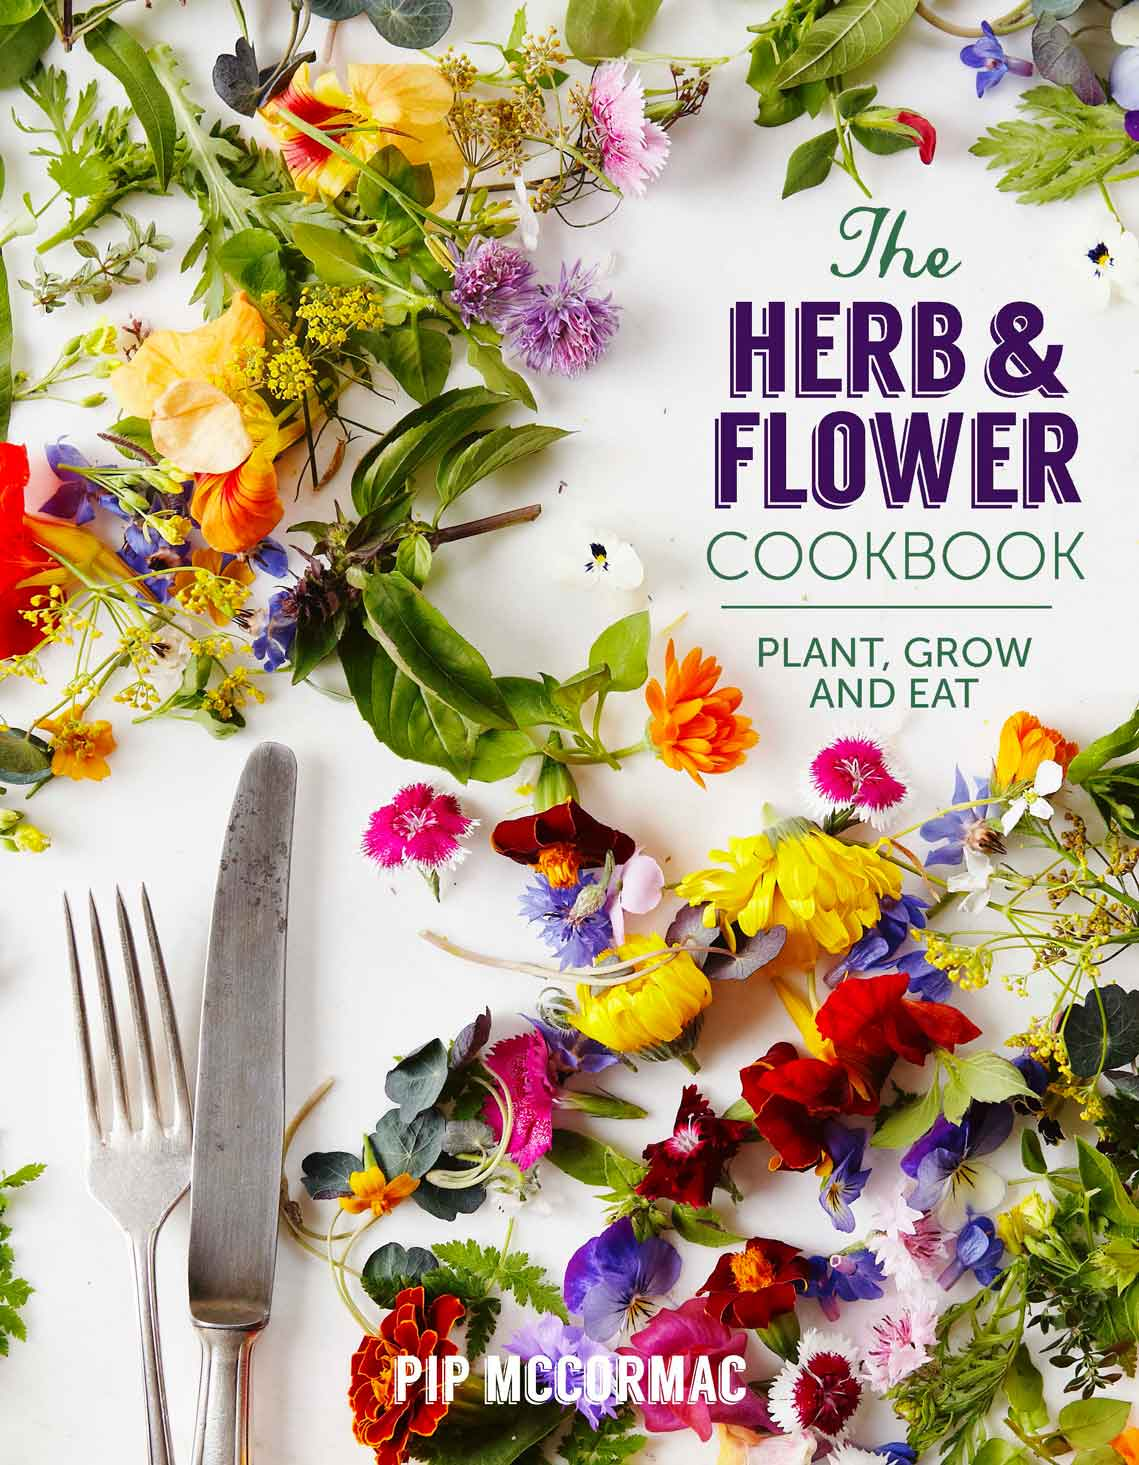 The Herb & Flower Cookbook